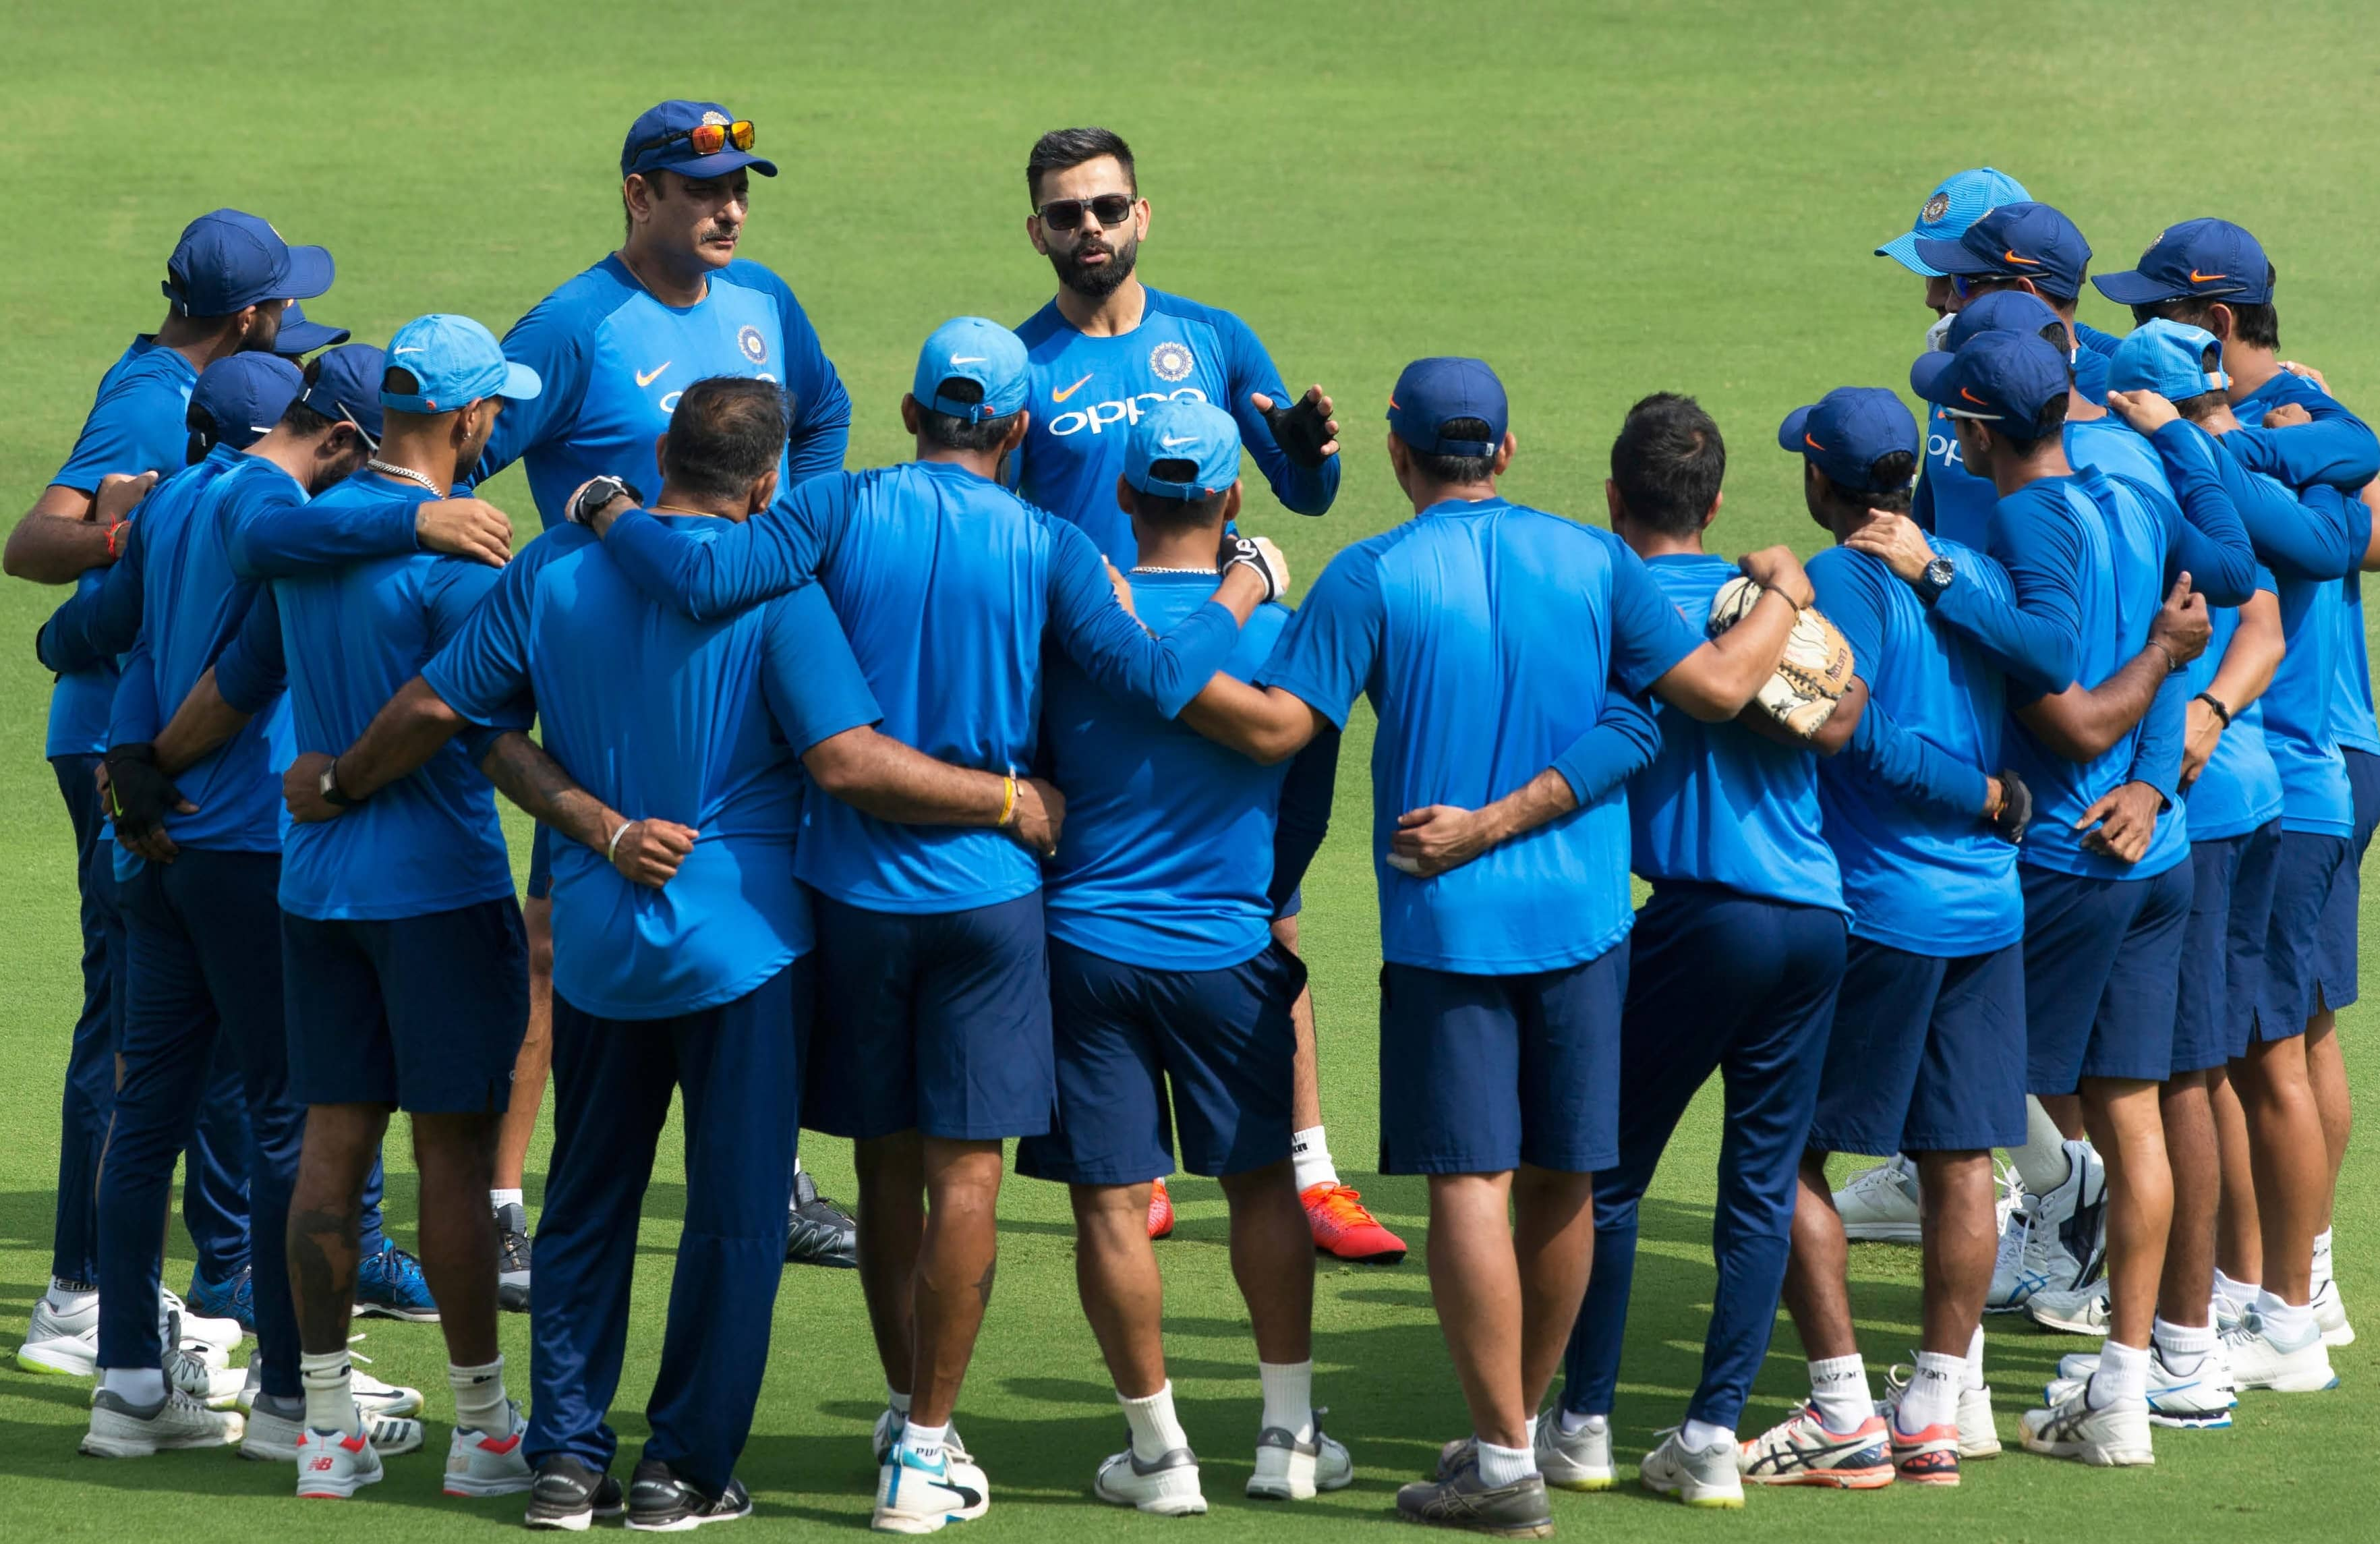 Is Team India Ready For The World Cup?